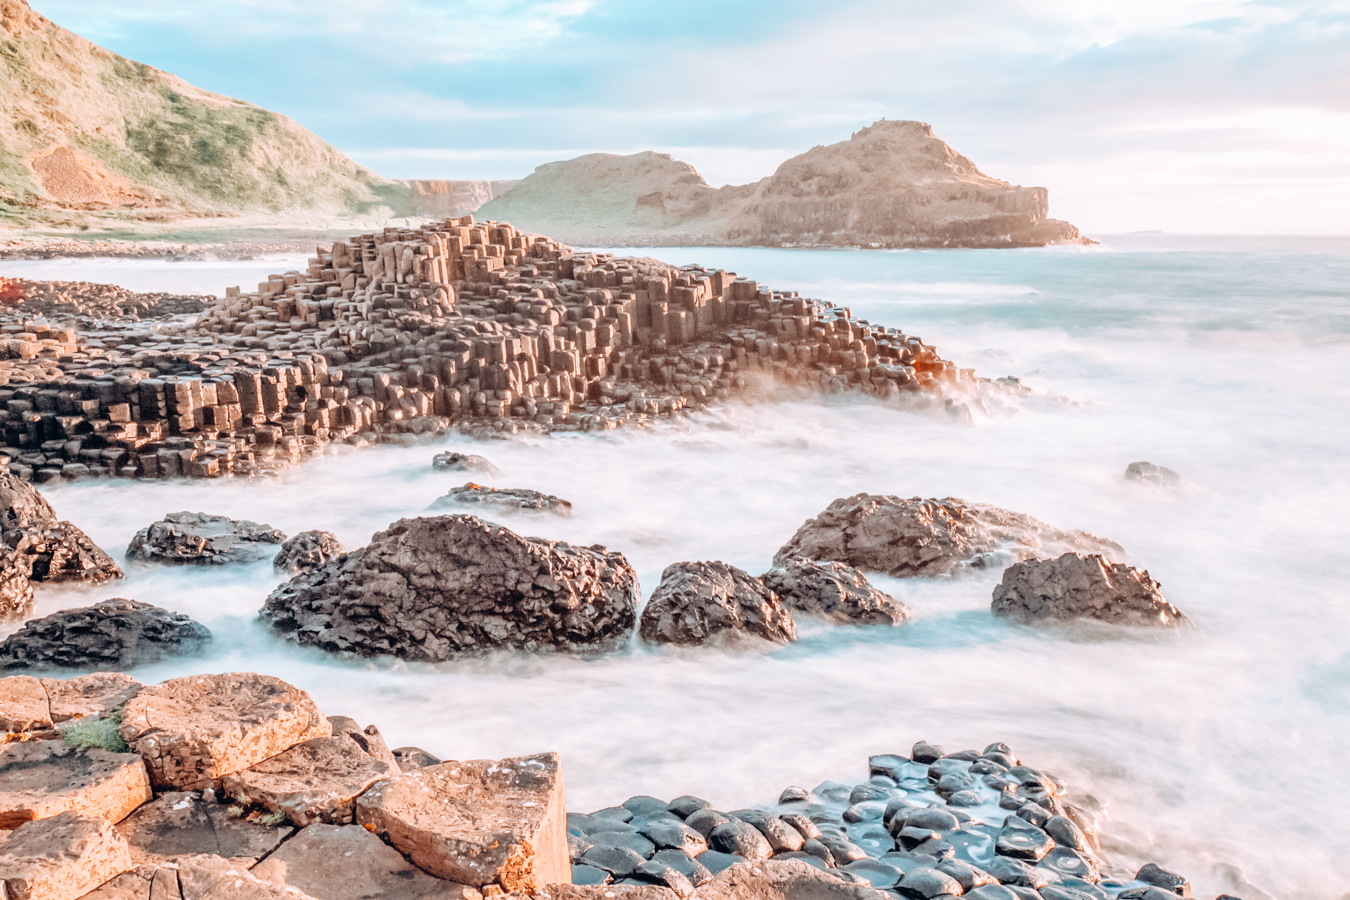 A view of Giants Causeway